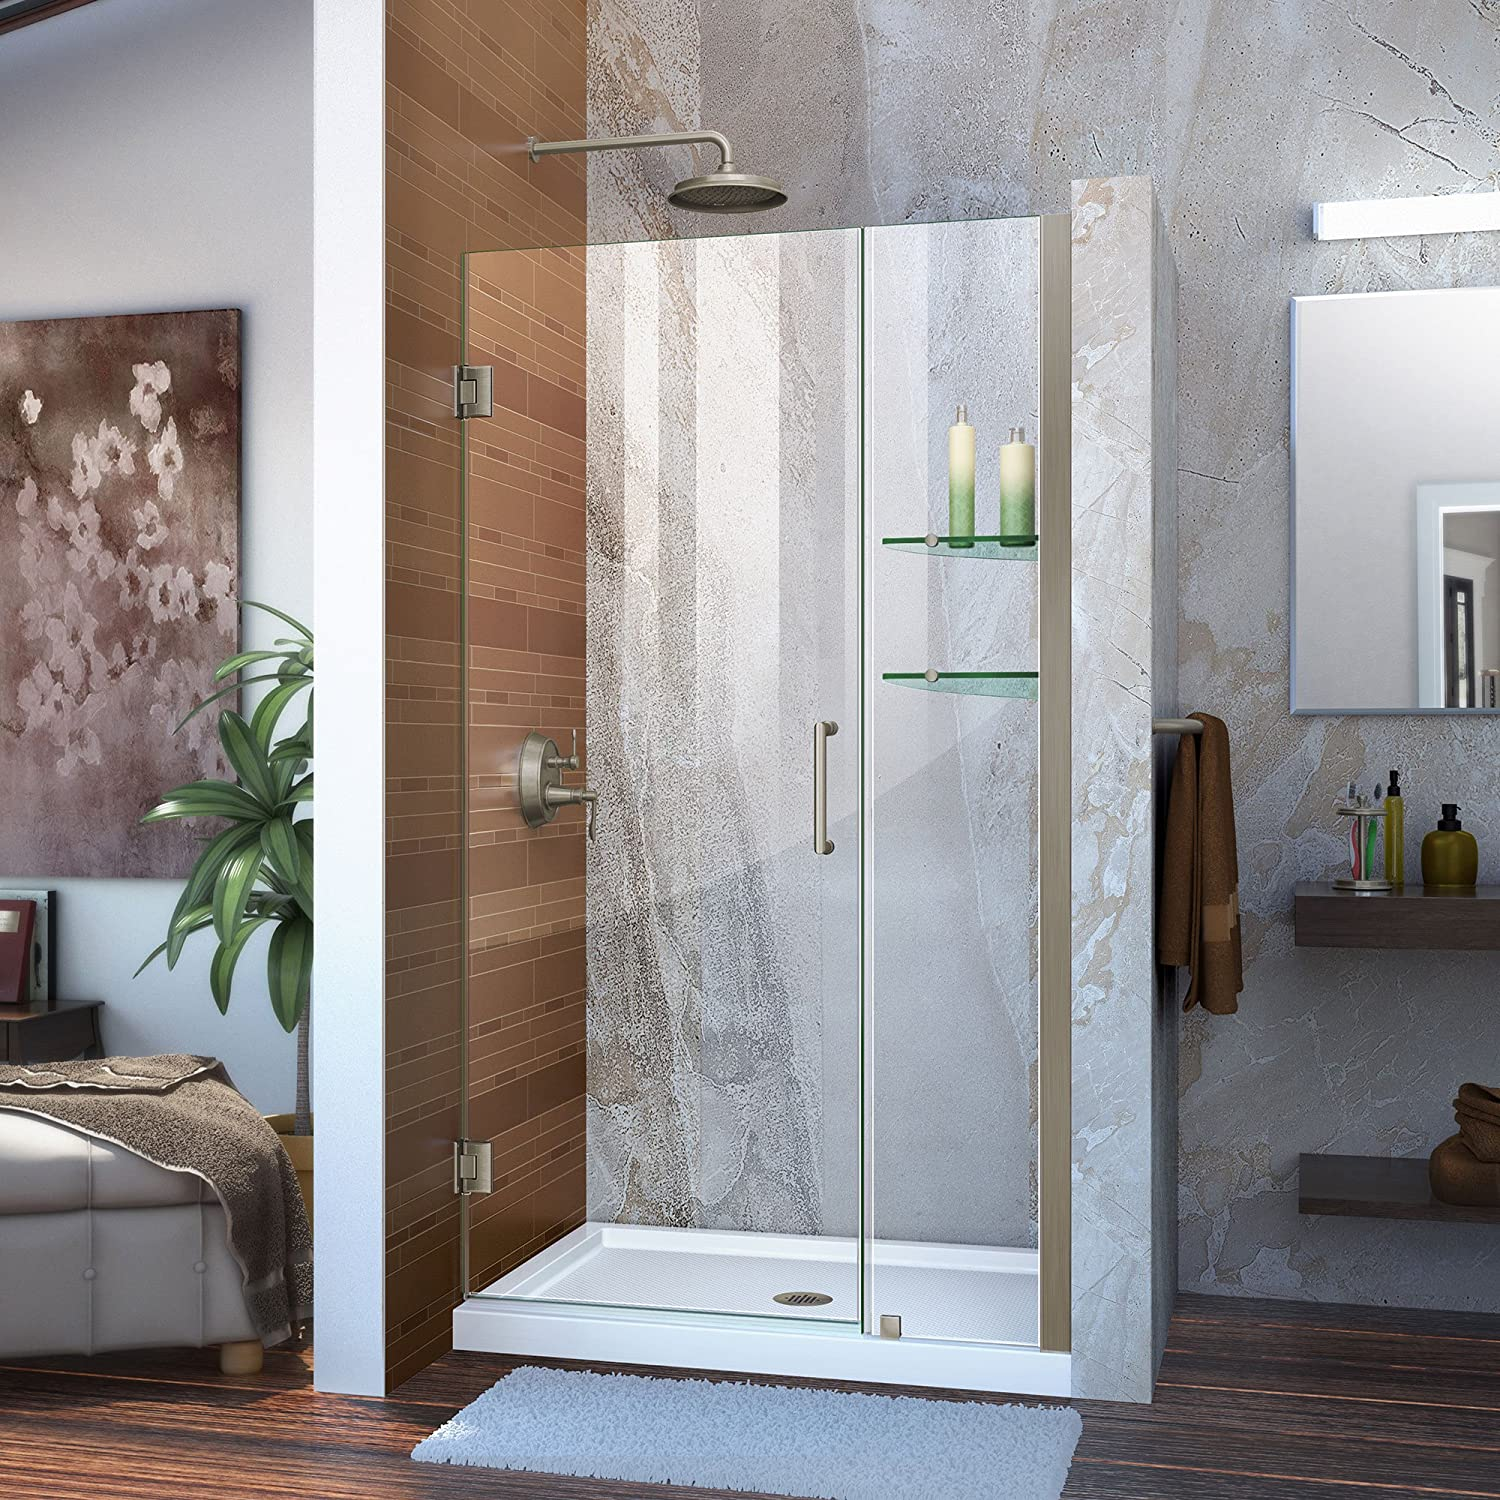 DreamLine Unidoor Min 38 in. to Max 39 in. Frameless Hinged Shower Door in Brushed Nickel finish, SHDR-20387210S-04